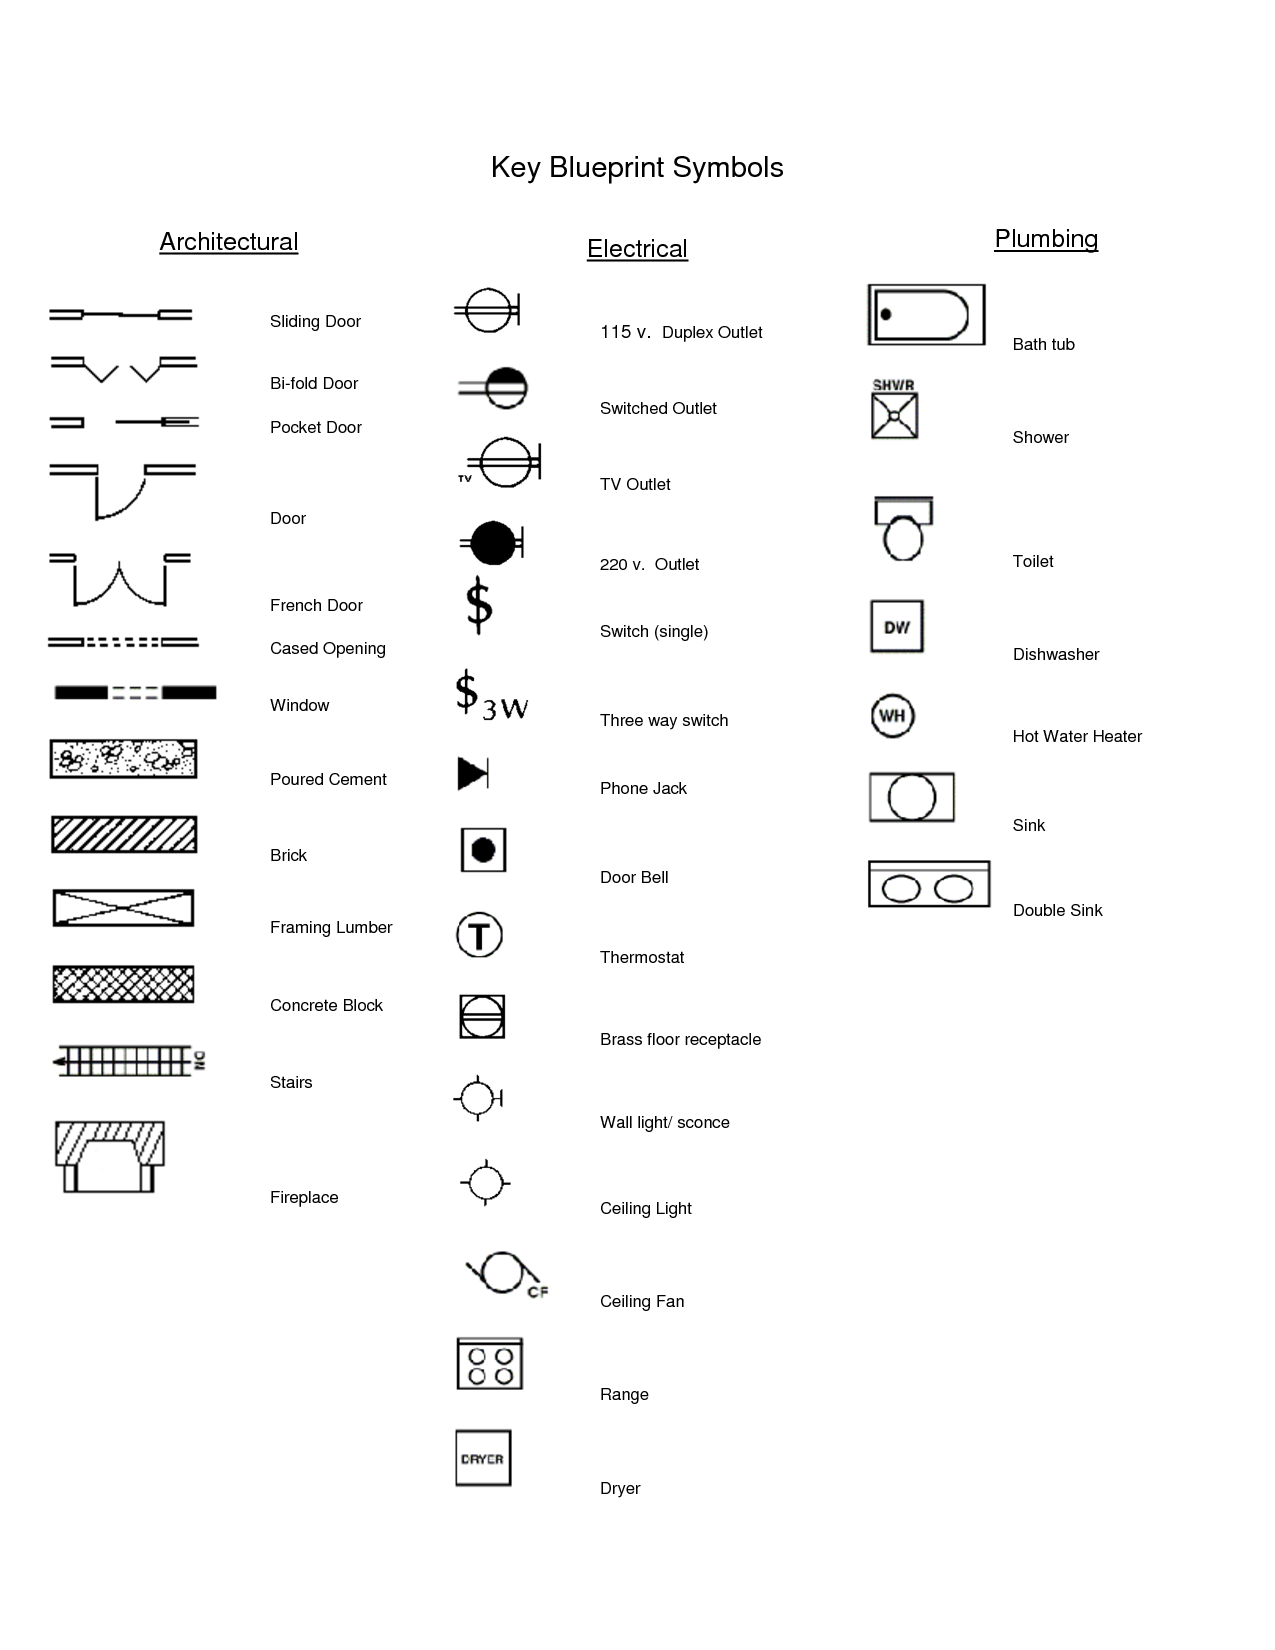 electrical outlet symbols blueprints brick pinned by www modlar com [ 1275 x 1650 Pixel ]